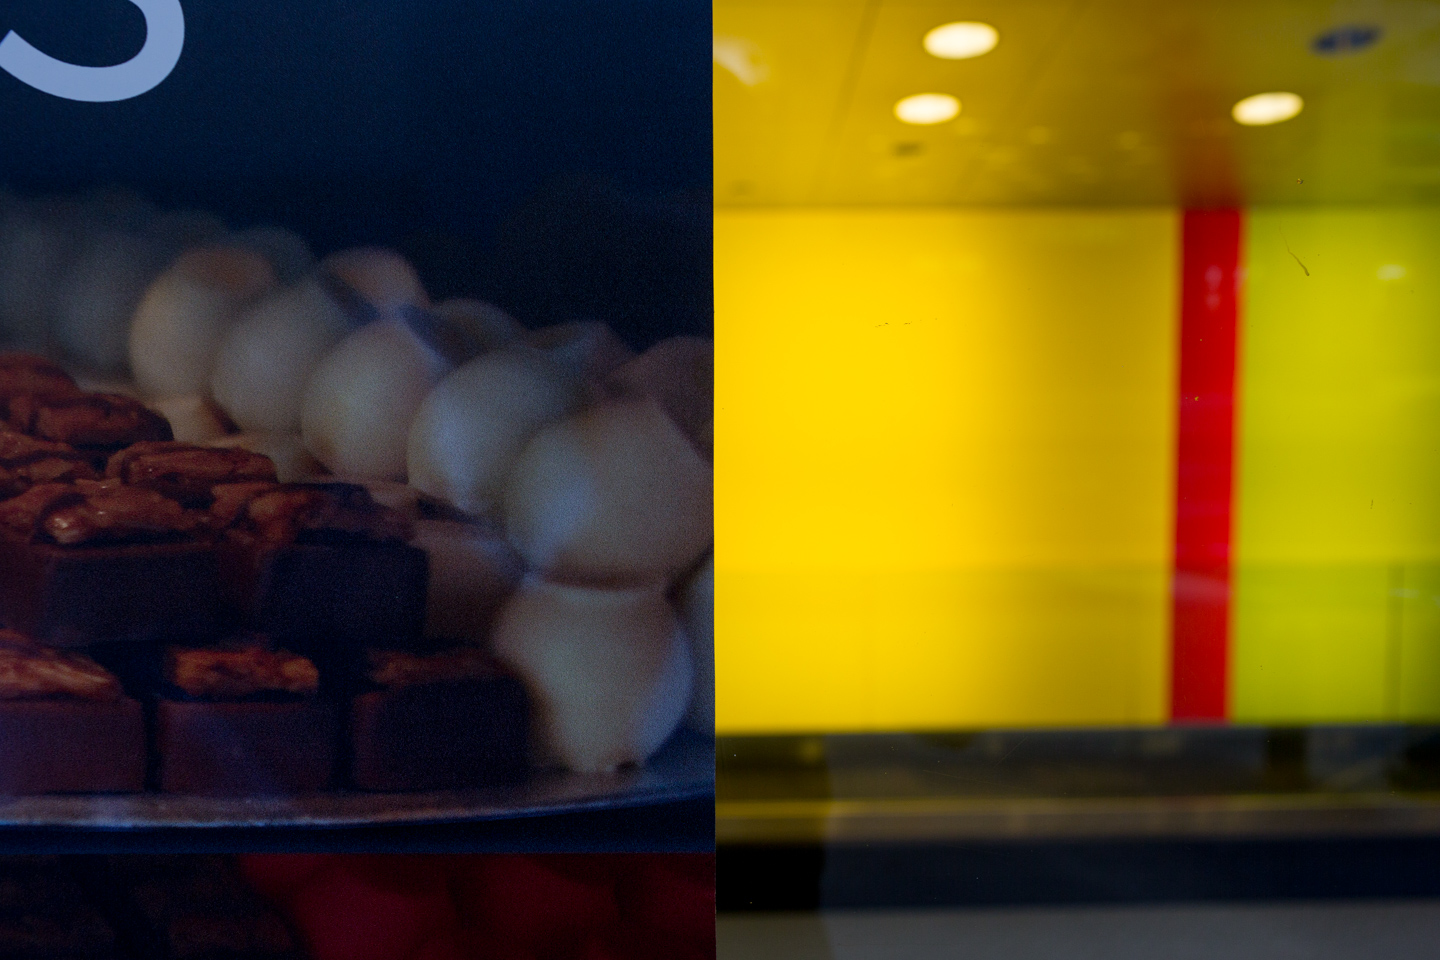 Sweets of Some Kind. New York, New York, 2013